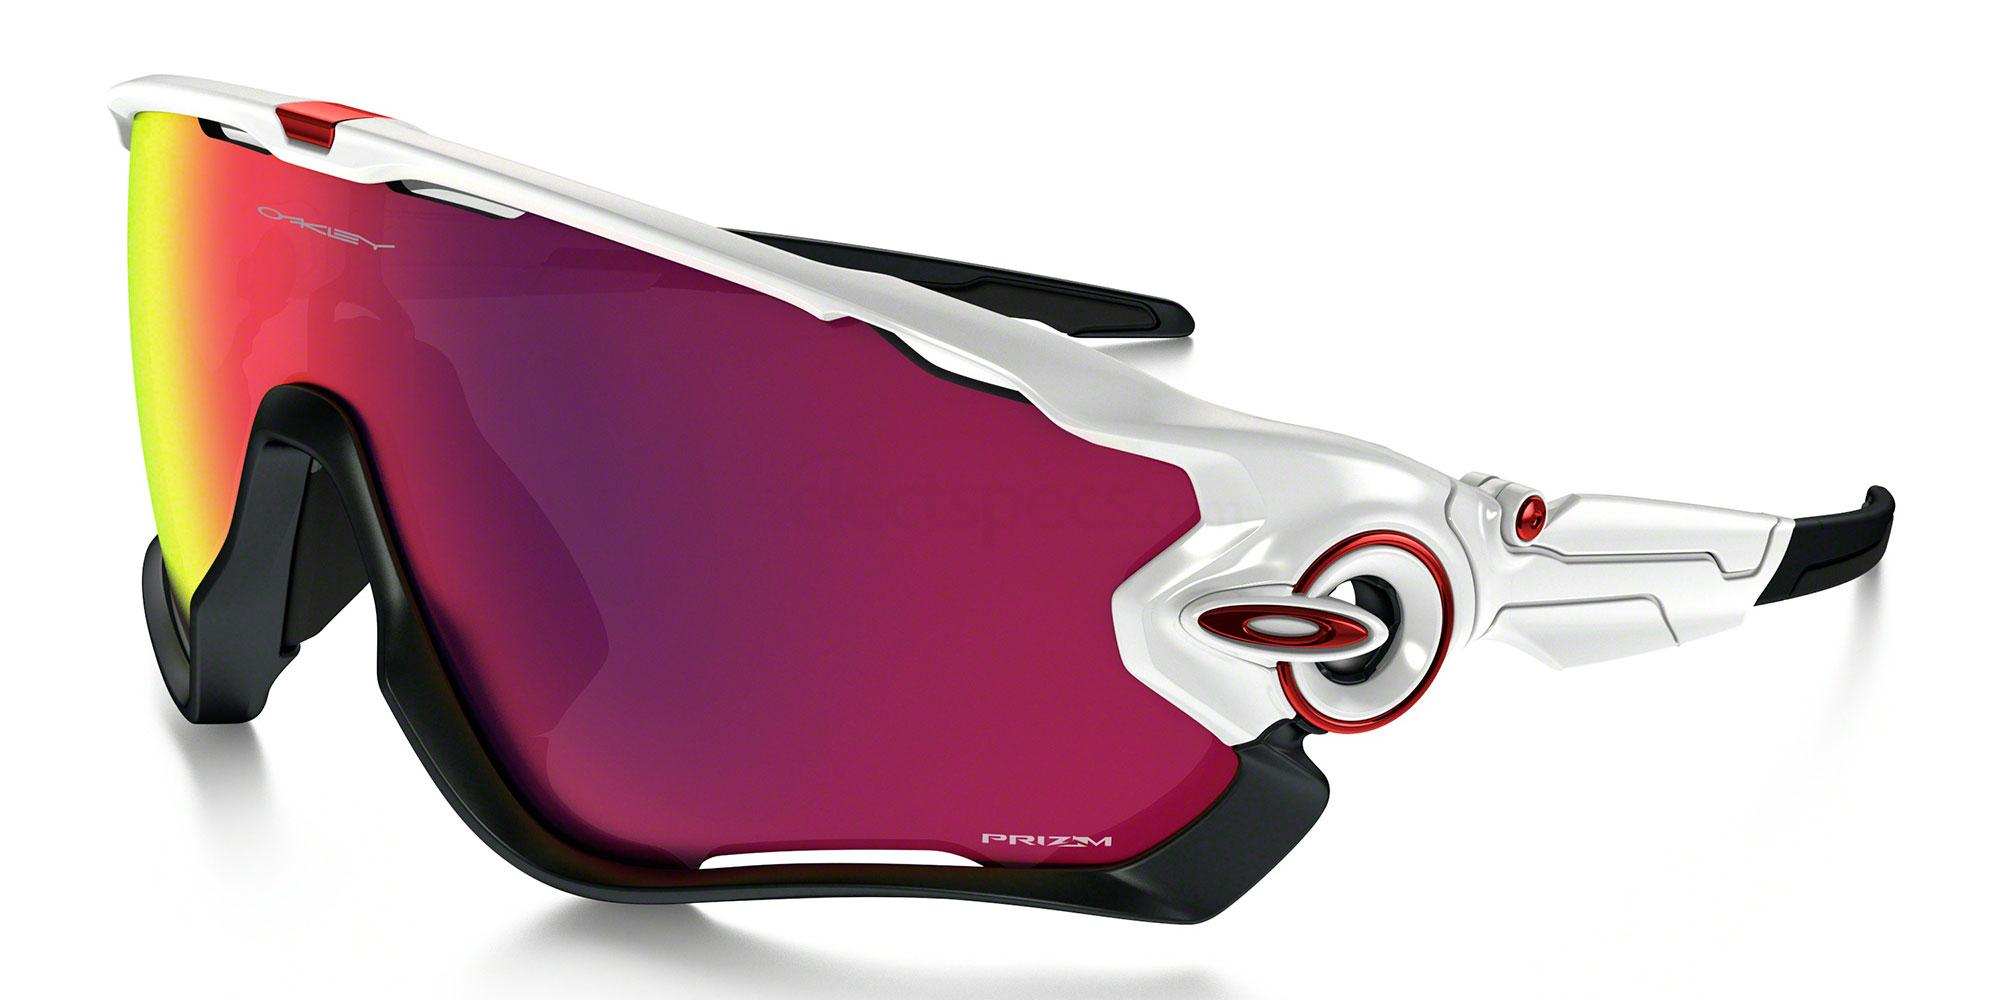 RunnersFashionamp; 10 Marathon Top Sunglasses Lifestyle For Kl1cJF